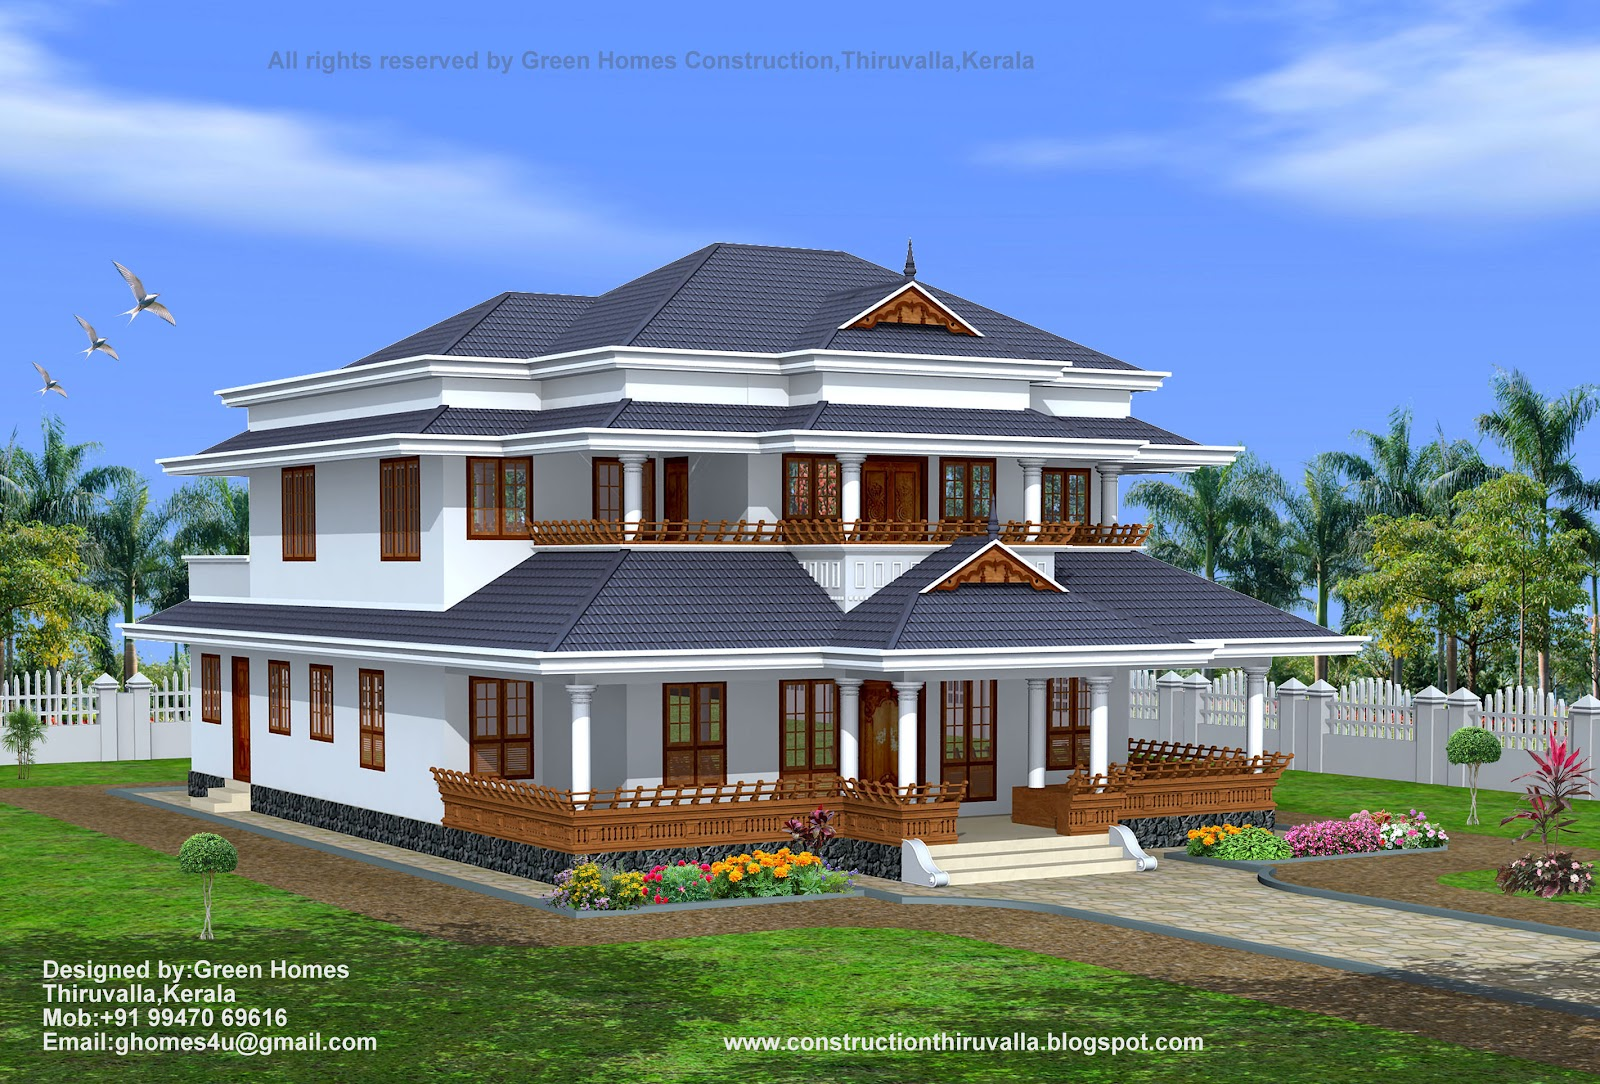 Green homes traditional style kerala home design 3450 sq feet for Conventional style home